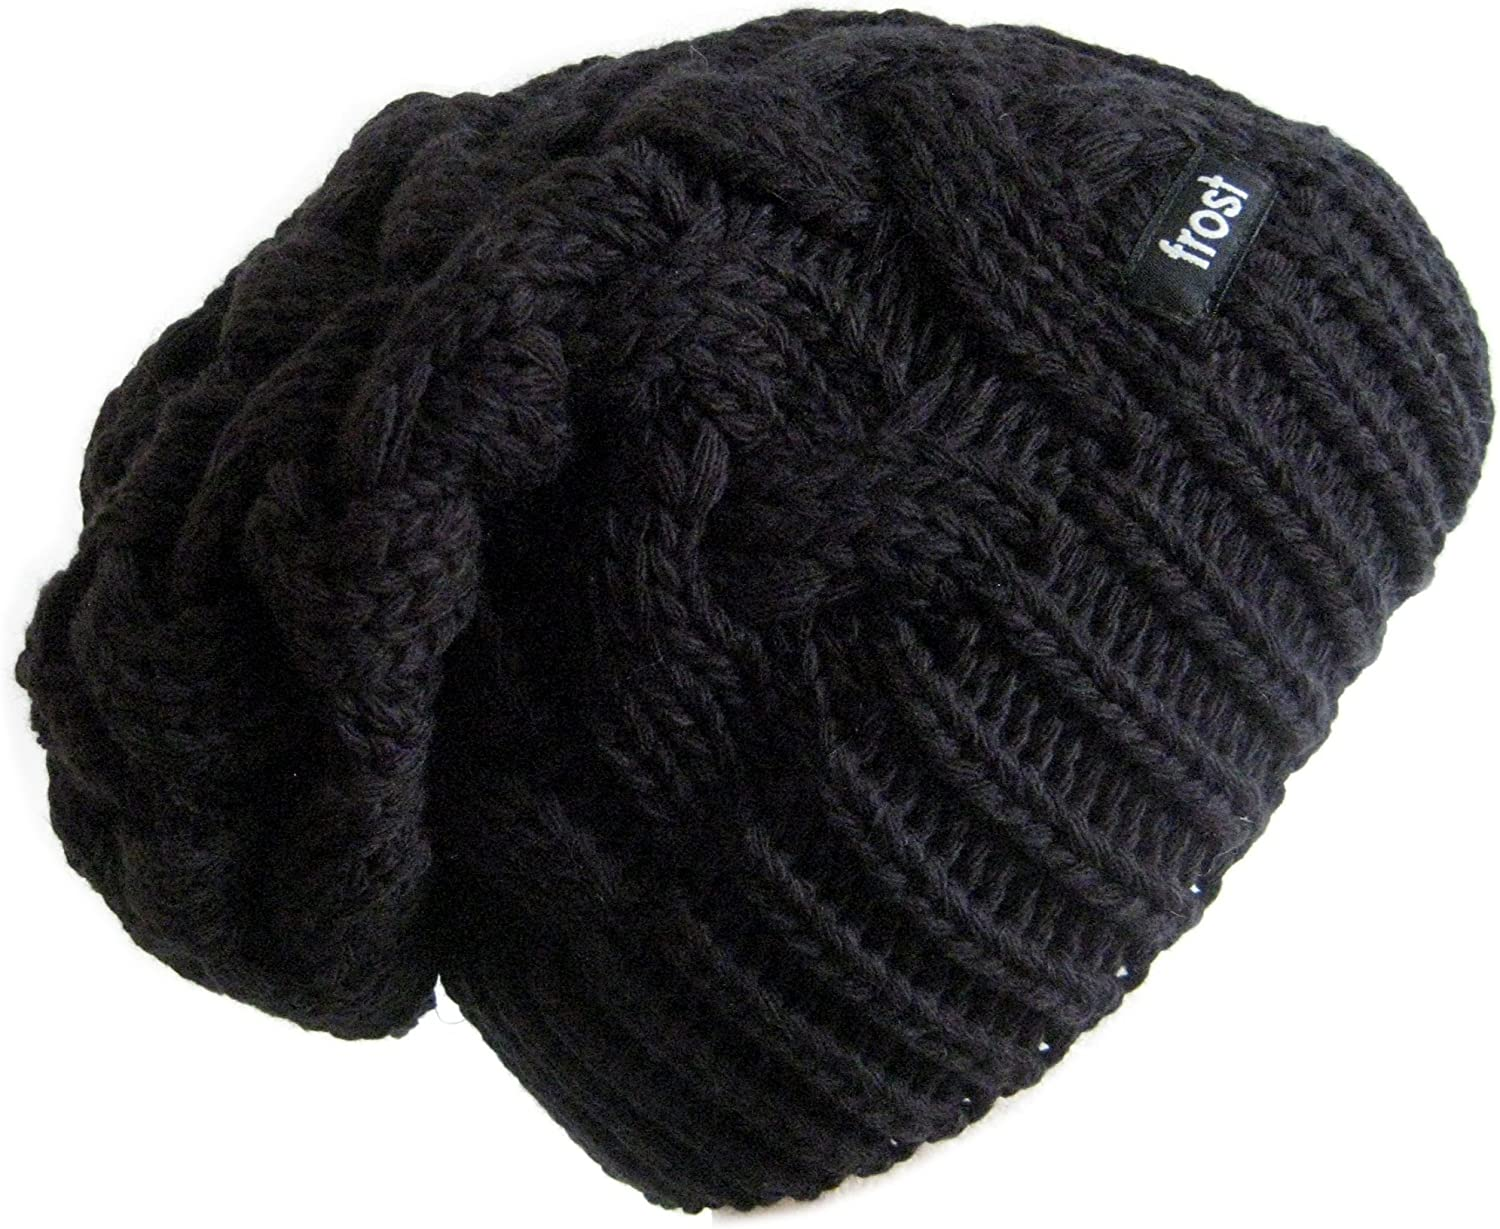 Frost Hats Winter Hat for Women Slouchy Beanie Cable Hat (Black)